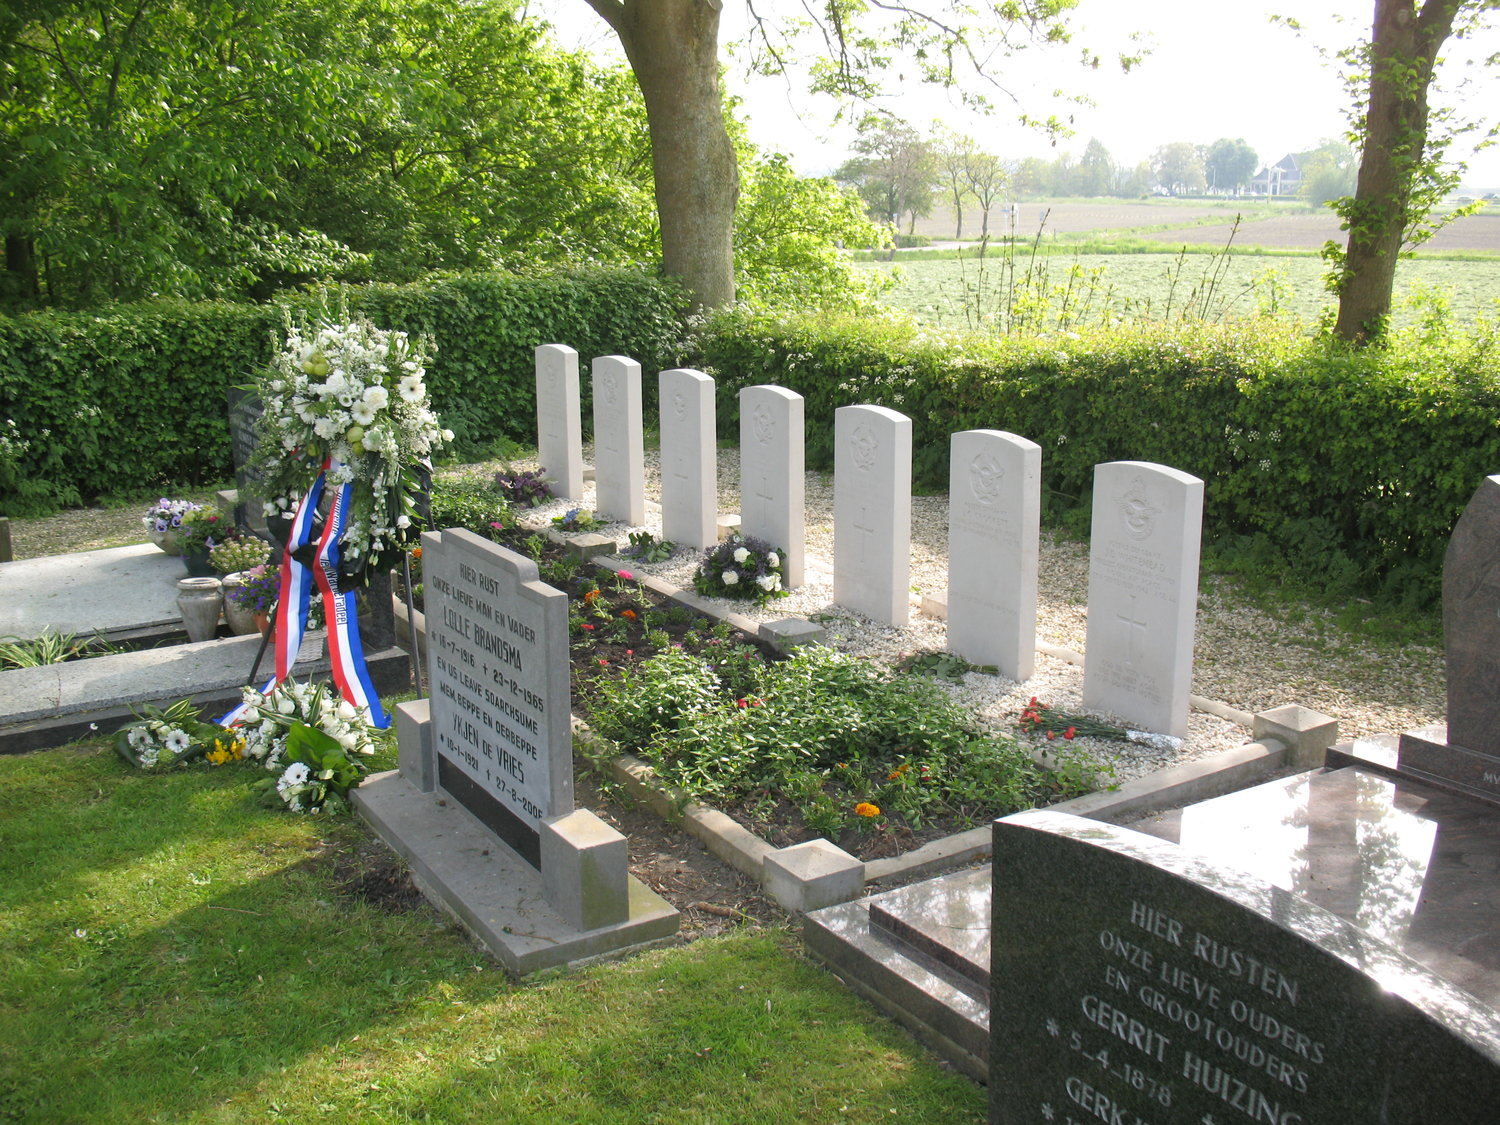 Jelsum+(Leeuwarderadeel)+10+-+right+side+overview+of+all+Allied+war+graves+overthere+(++flowers+etc.+of++May+4+Remembrance+Eve).JPG